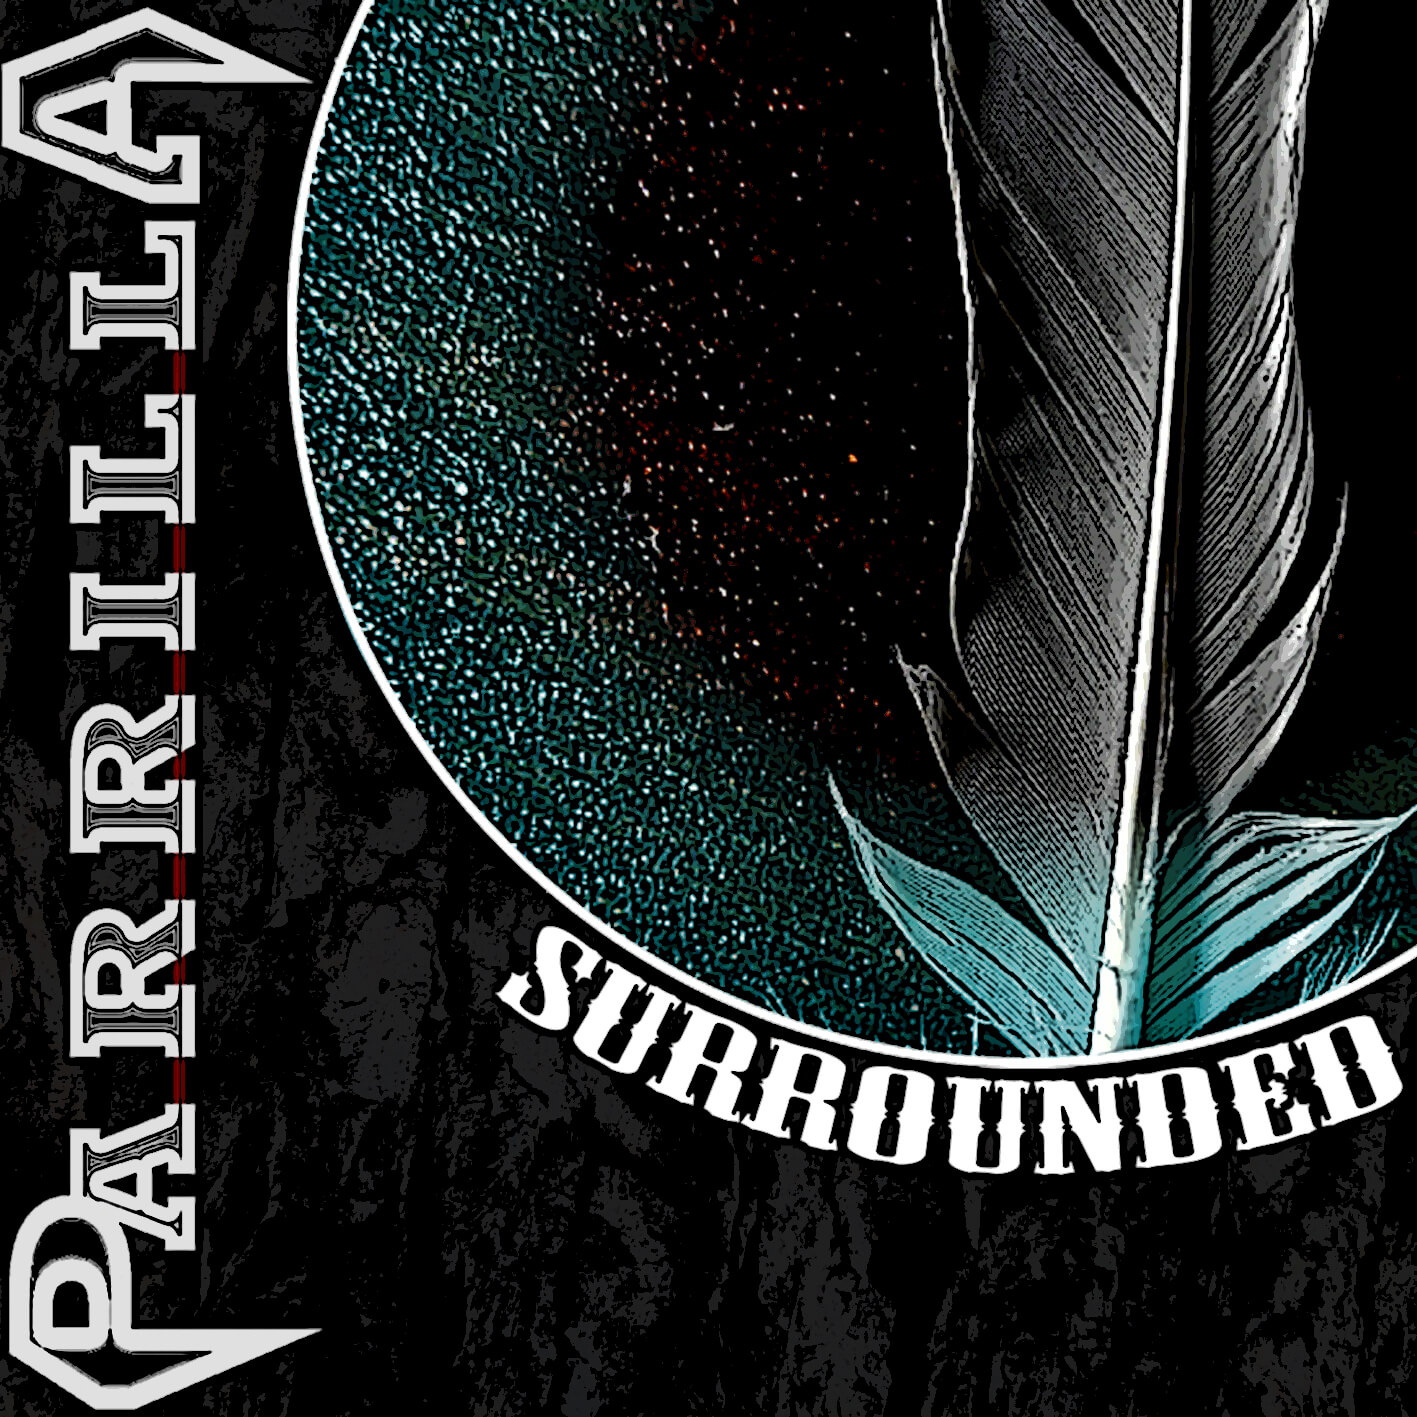 Surrounde cover used for the single of the song in 2019